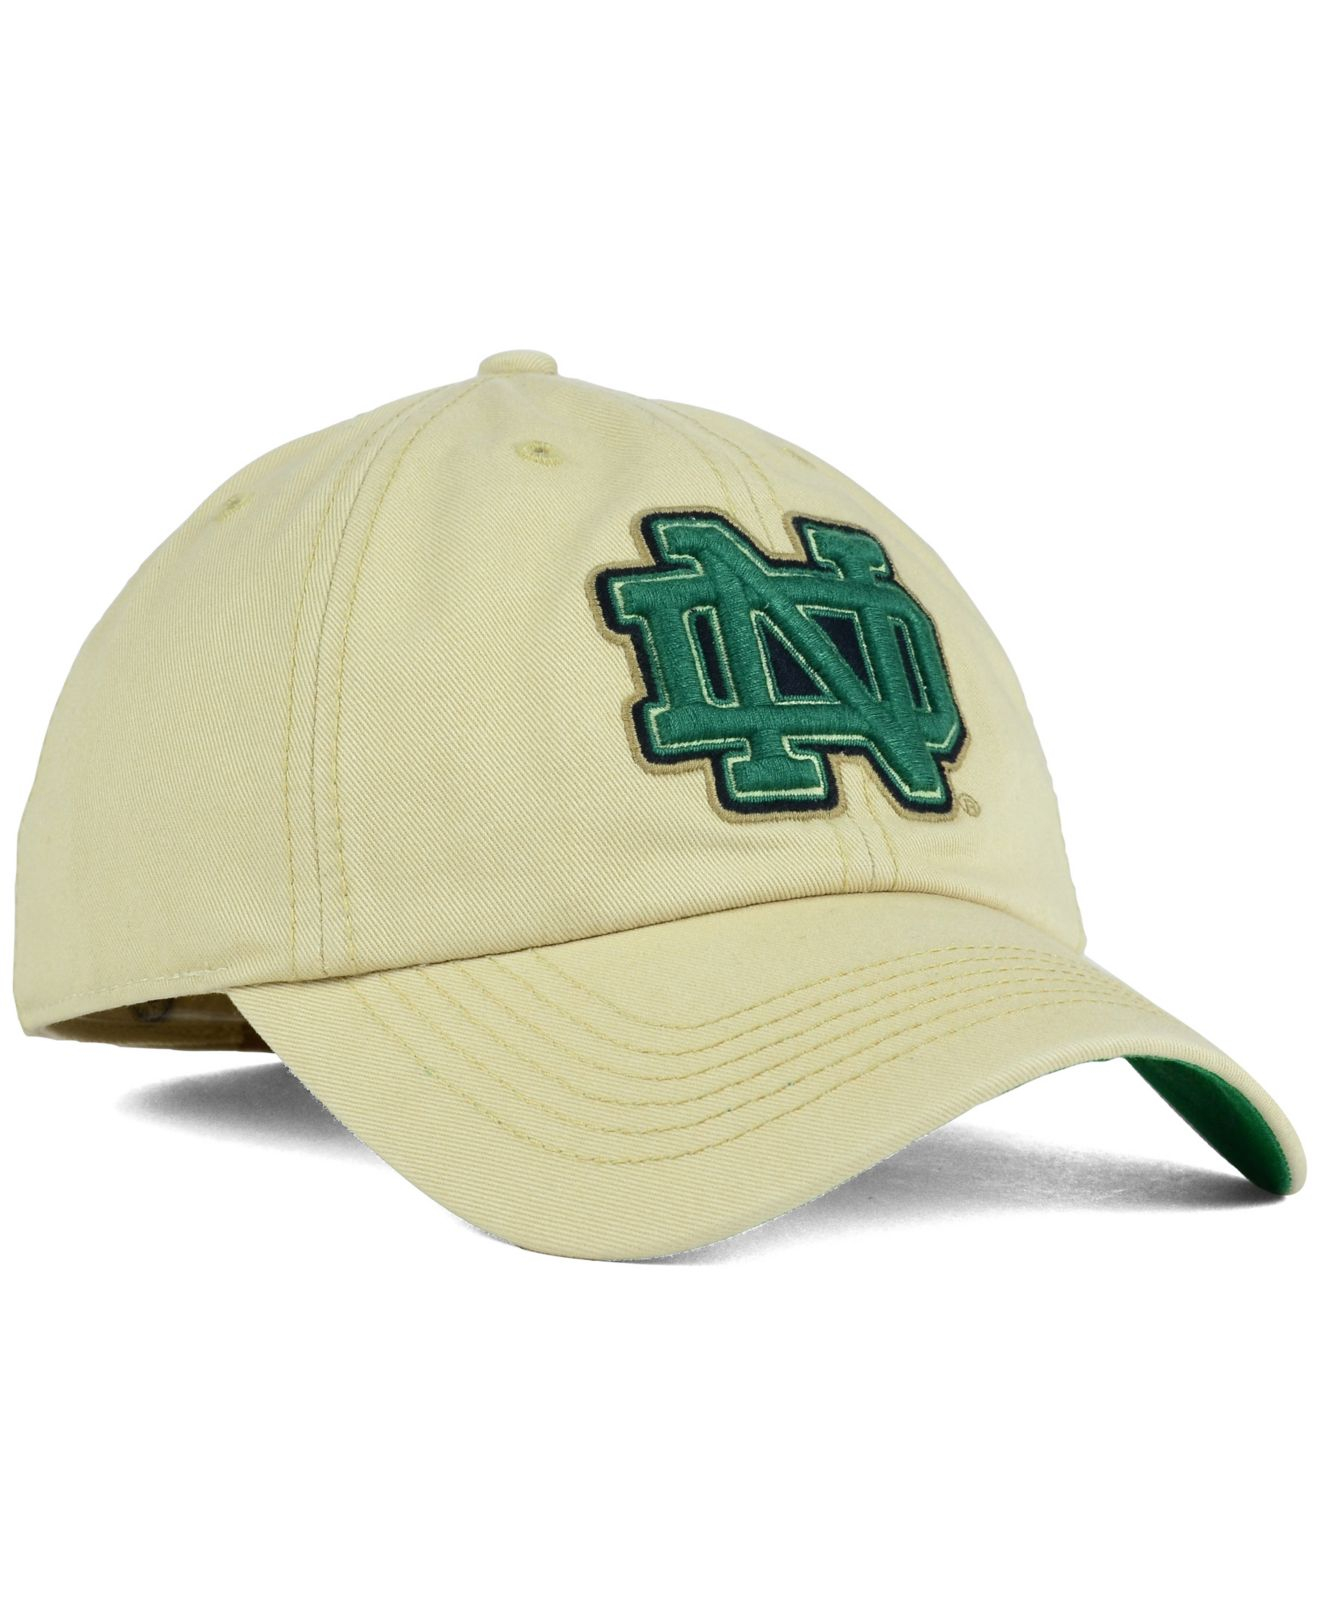 5c994f34fa57b ... hat a2634 f5046 coupon for lyst 47 brand notre dame fighting irish  franchise cap in natural cbb39 1fd21 ...